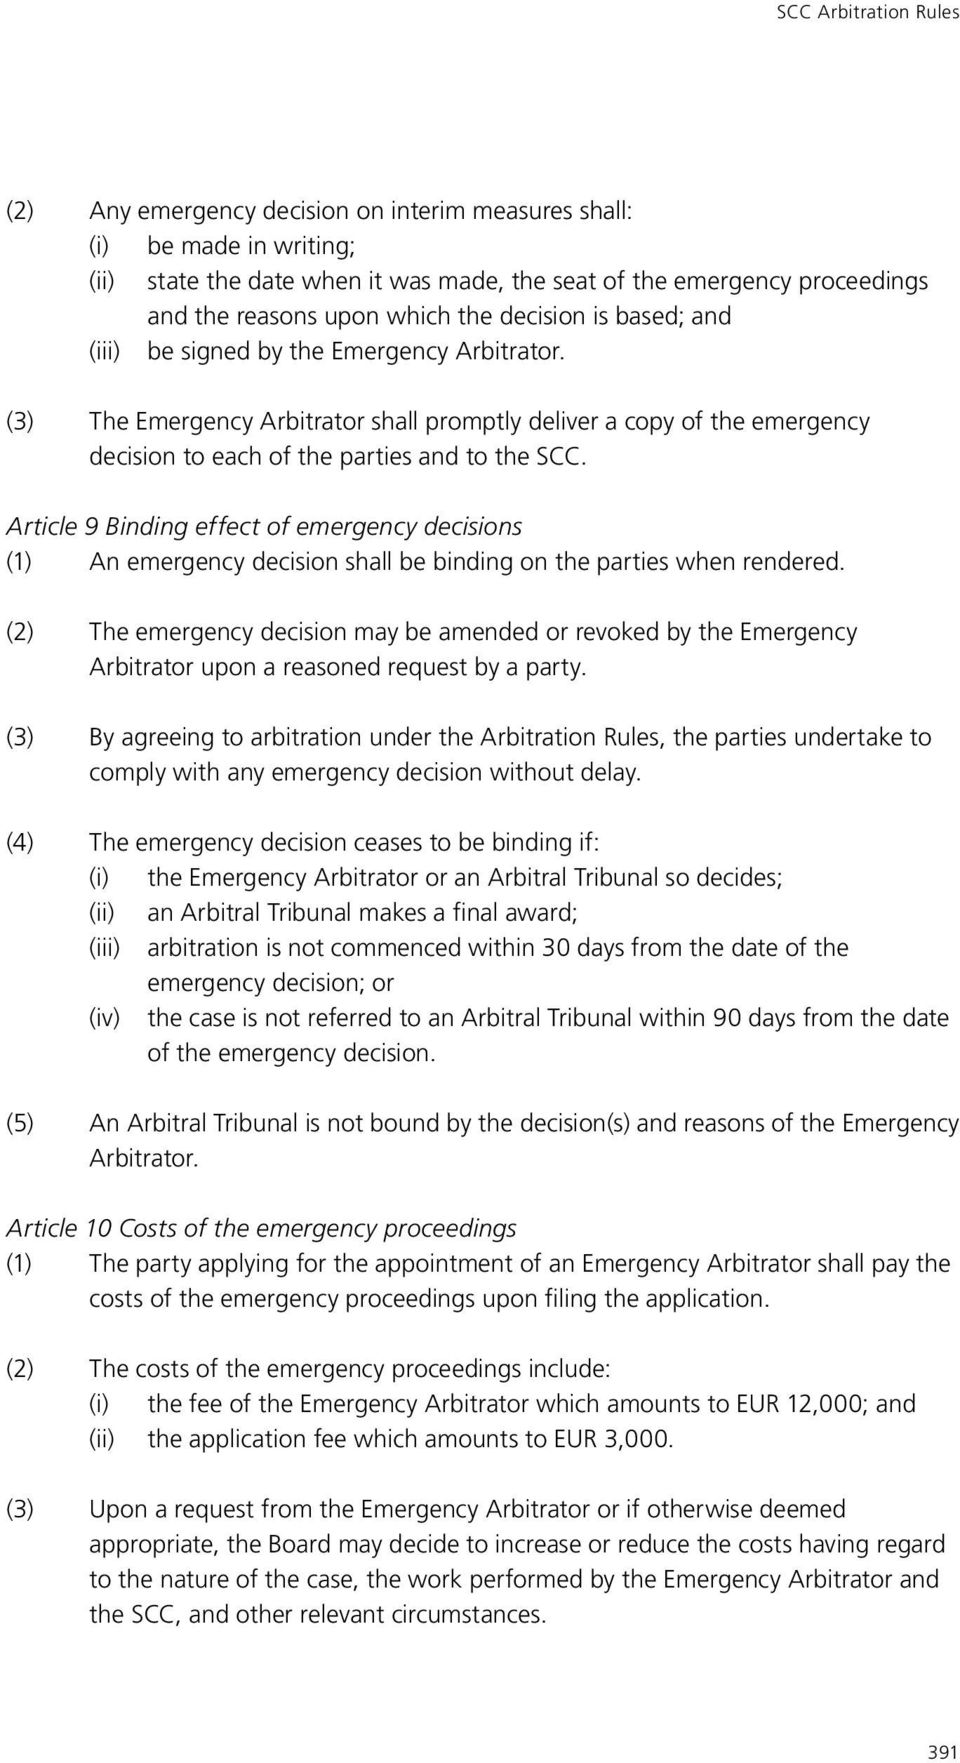 (3) The Emergency Arbitrator shall promptly deliver a copy of the emergency decision to each of the parties and to the SCC.